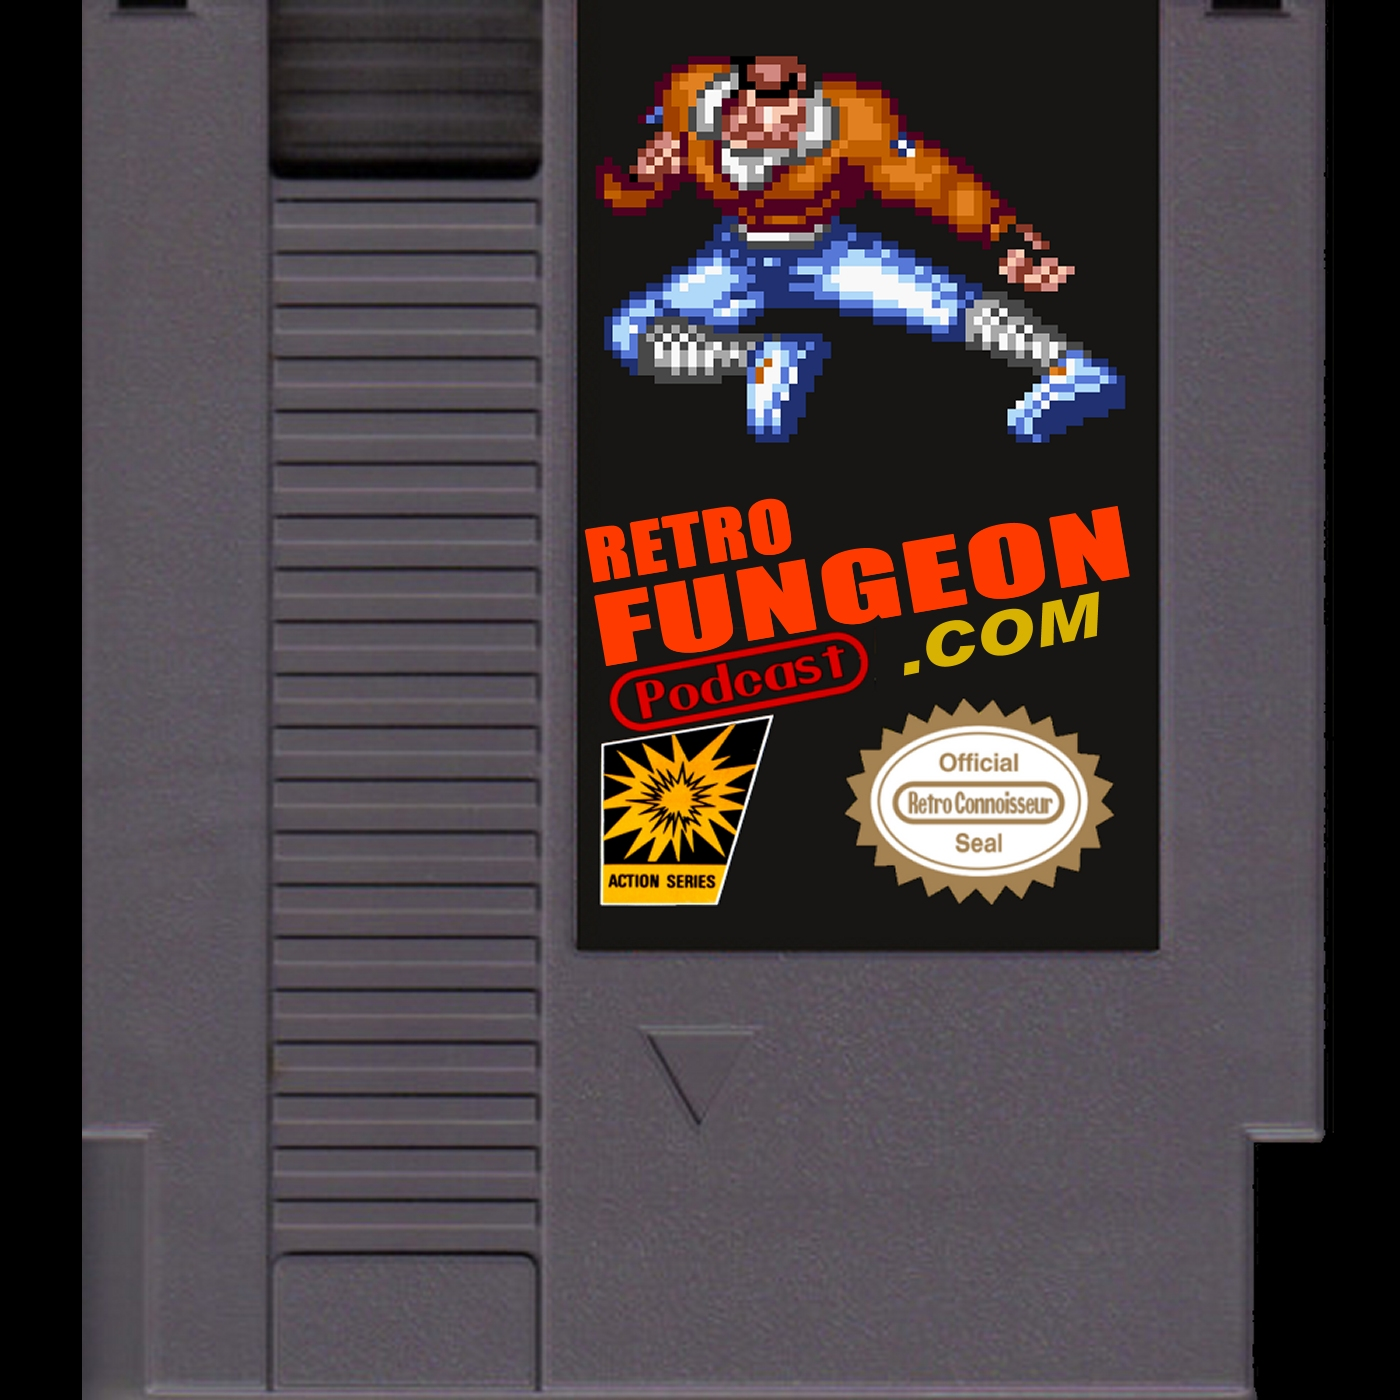 RetroFungeon Podcast 019: Early Internet and WTF EB games?